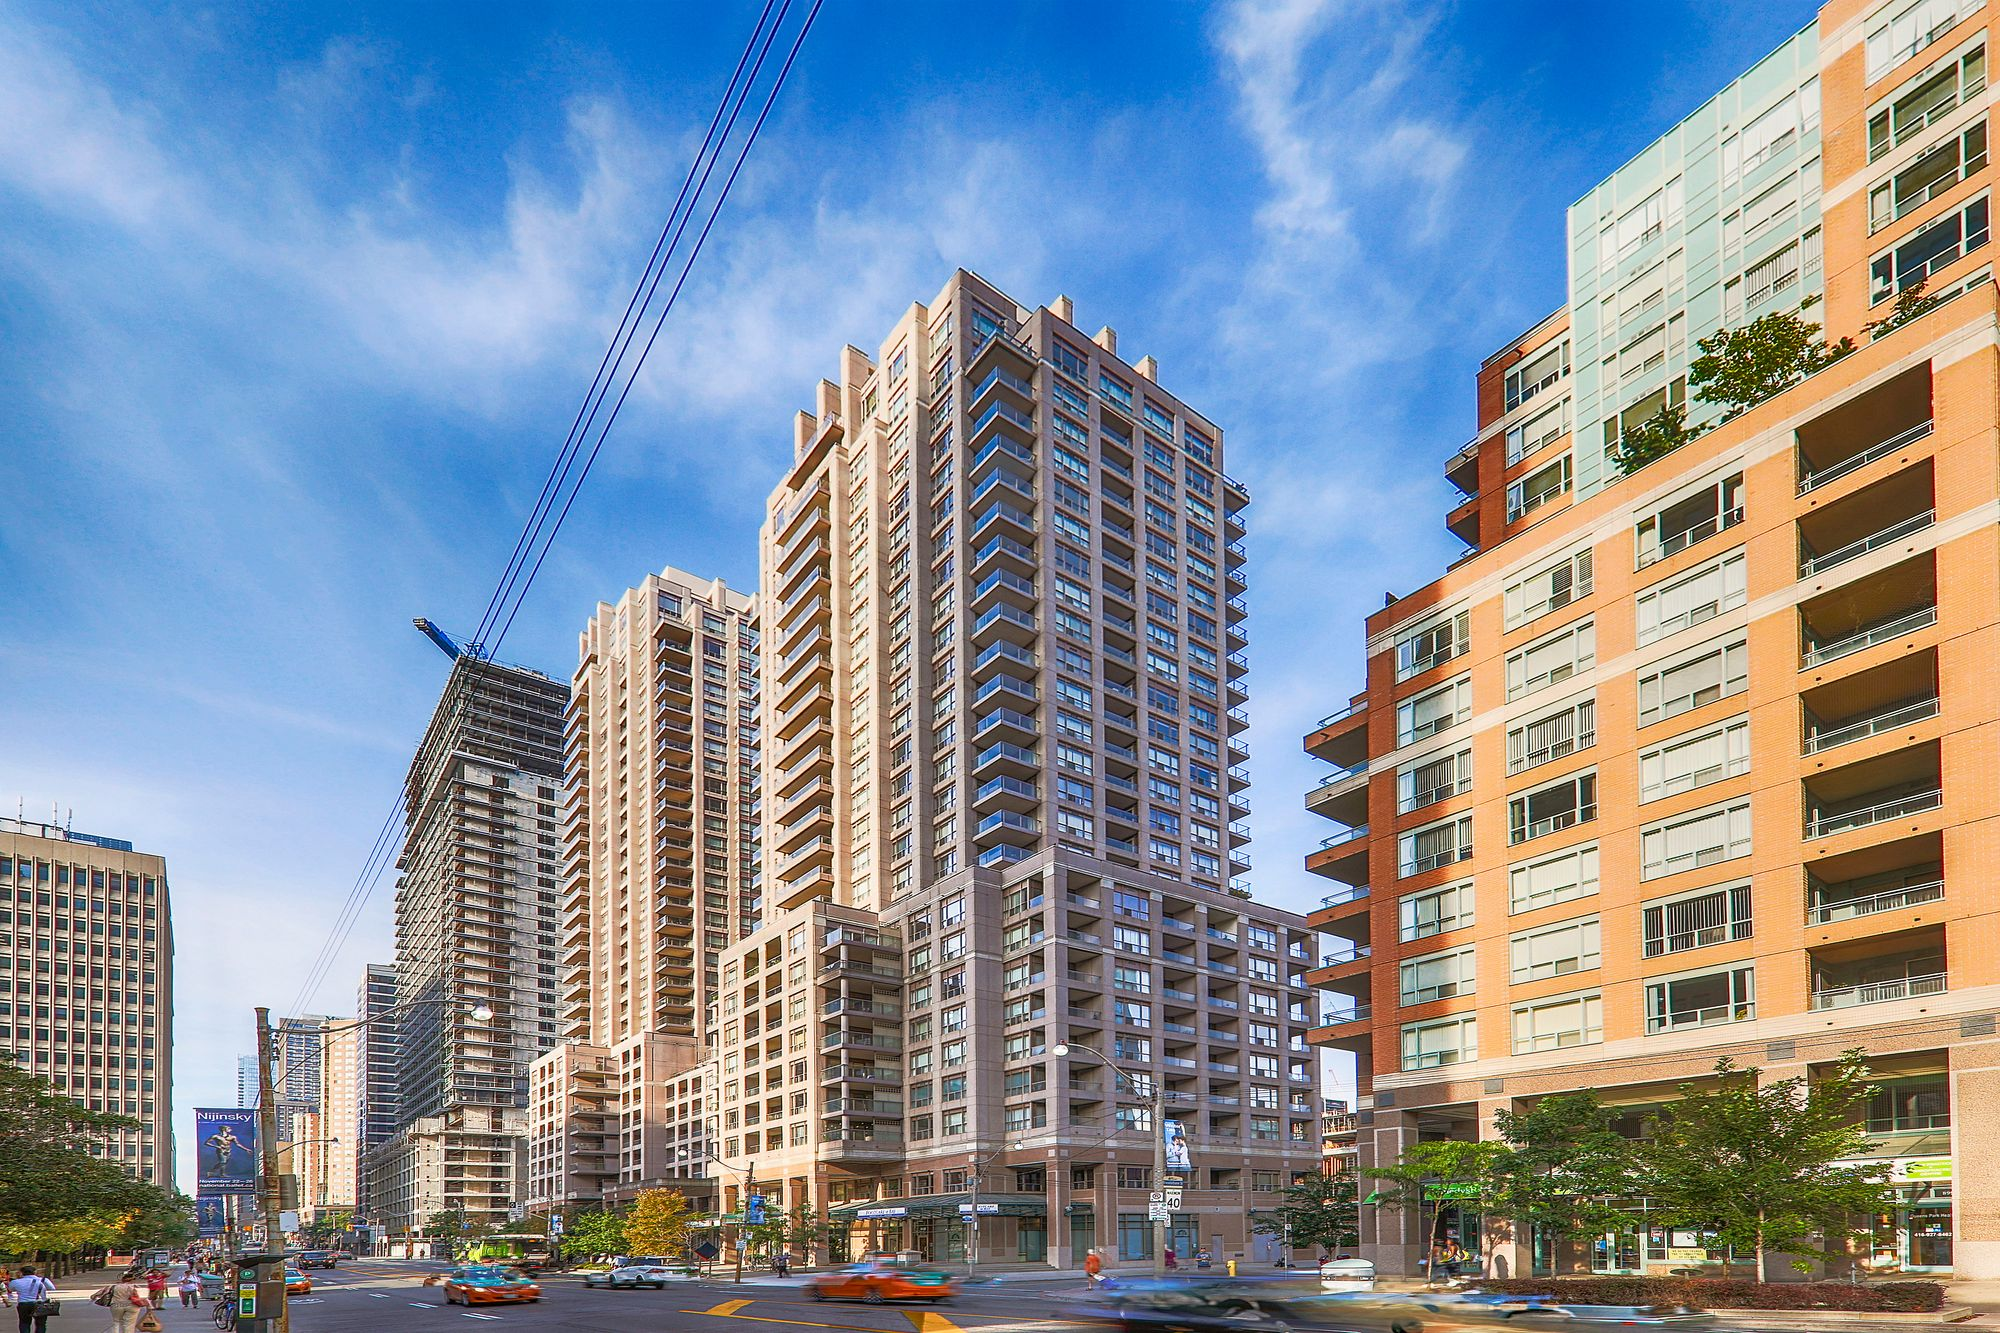 The Allegro at 909 Bay St. This condo is located in  Downtown, Toronto - image #2 of 5 by Strata.ca